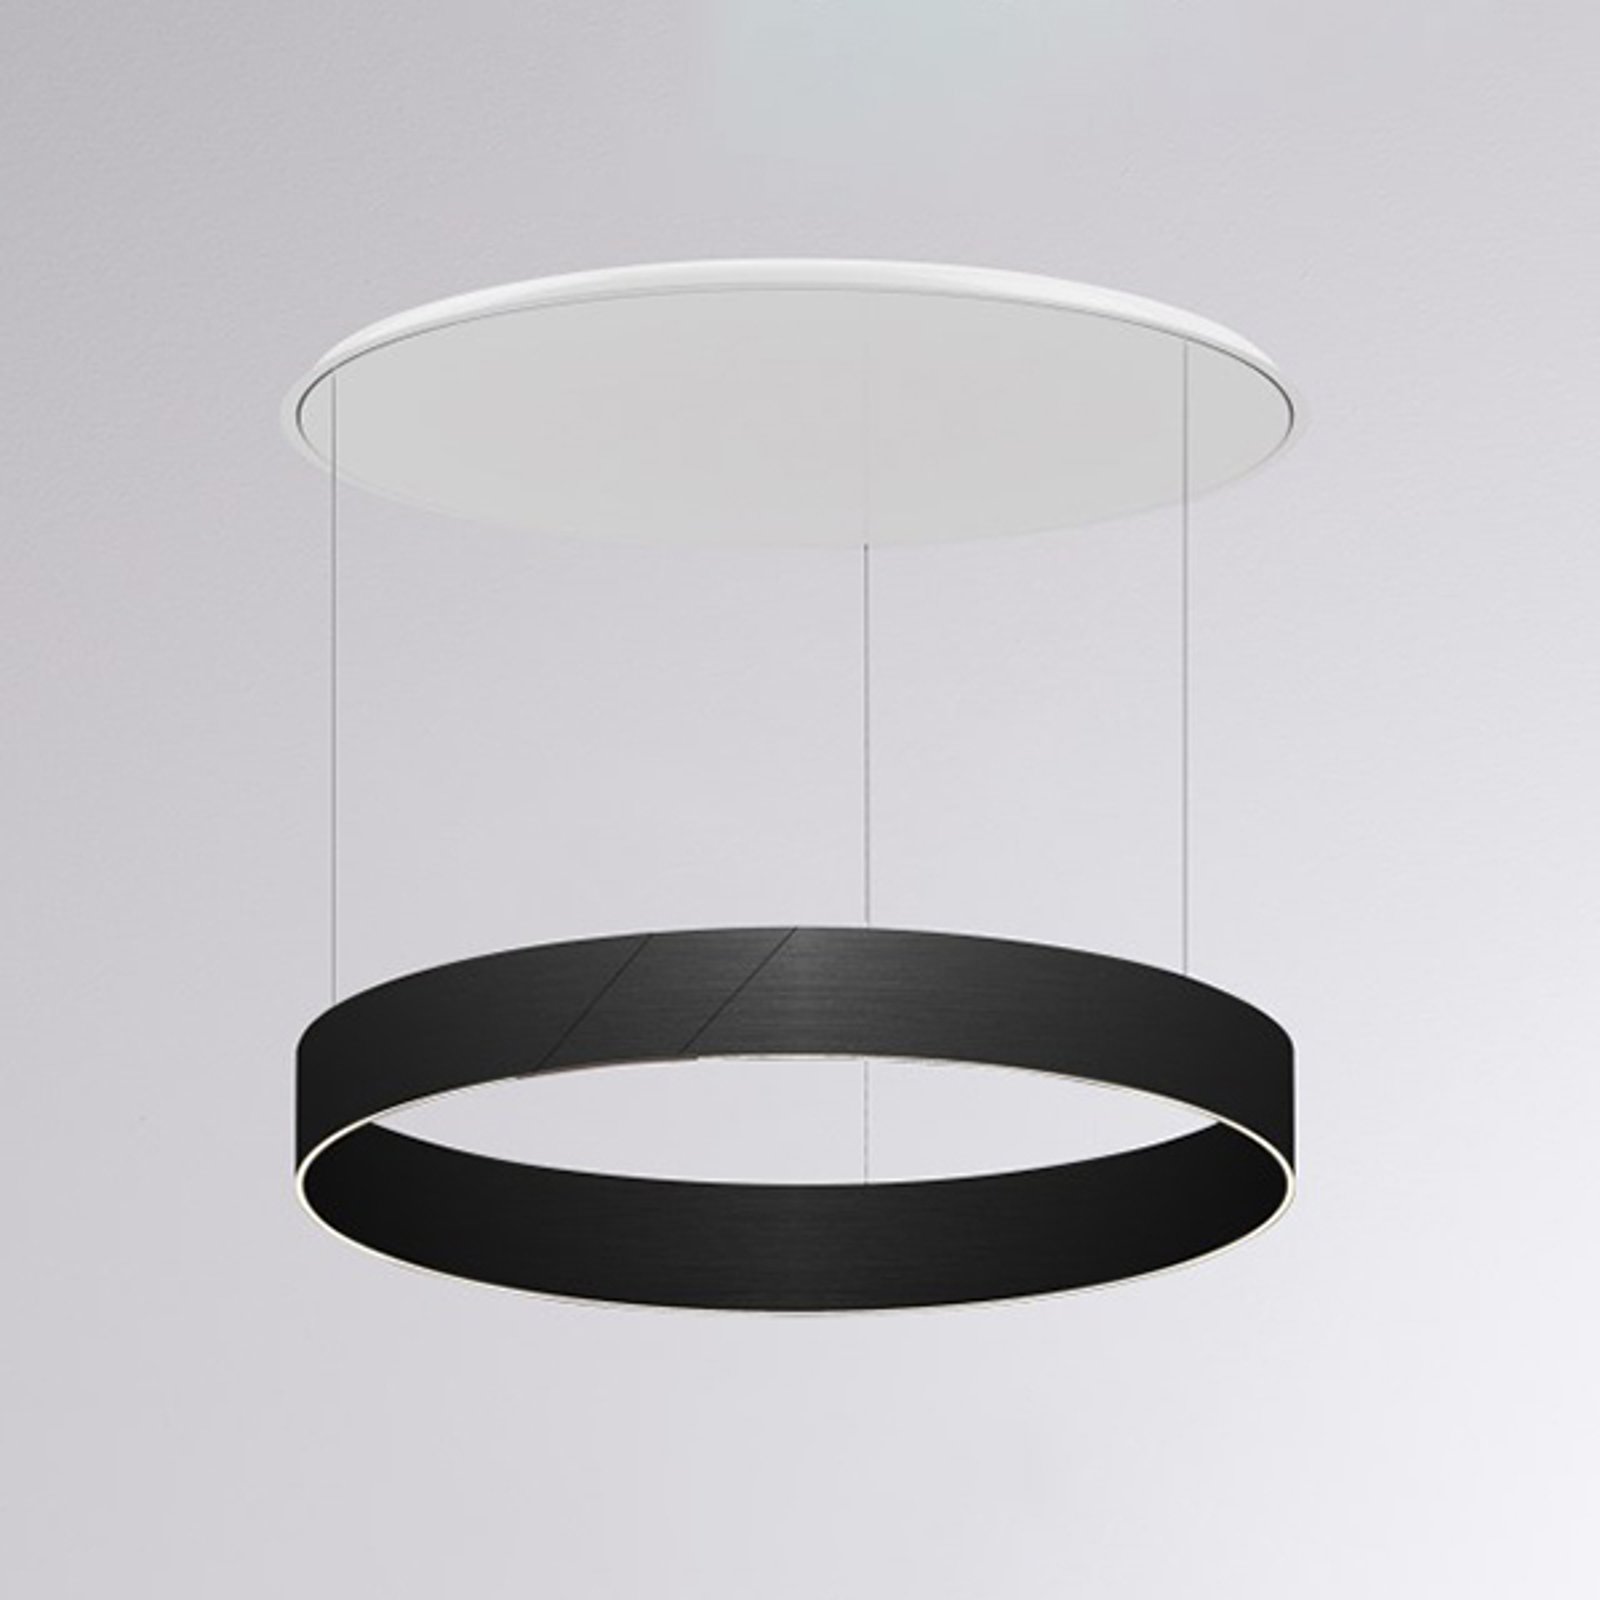 LED hanglamp After 8 Round 1-10V 2700K zwart